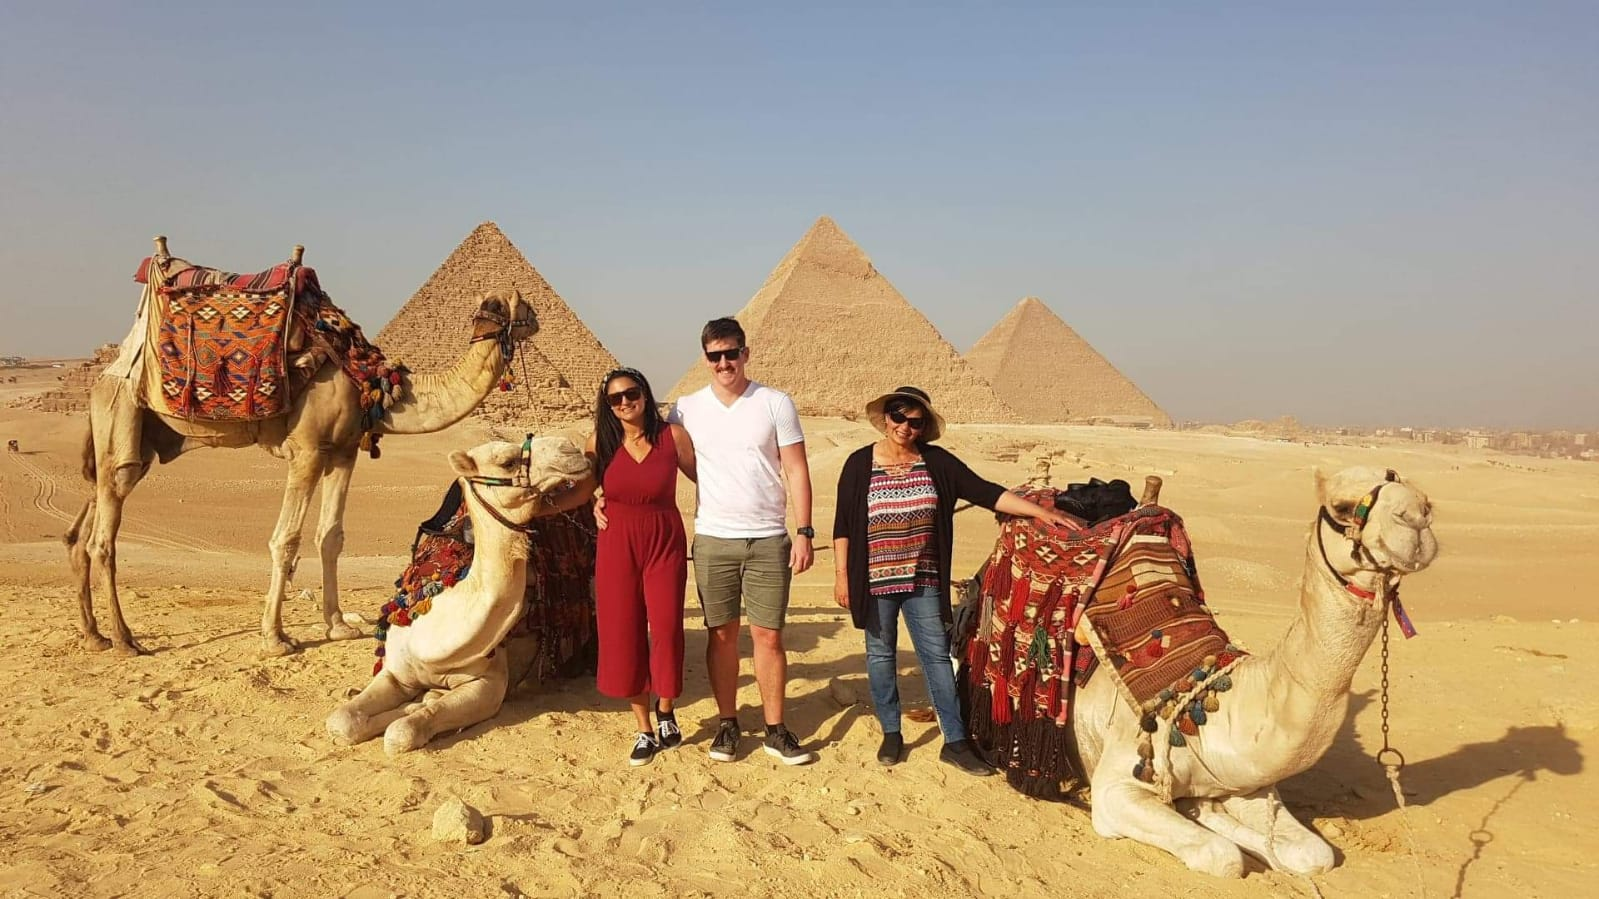 Egypt Tour to Cairo - Alexandria - Luxor West & East Bank 7 Days with flight 9